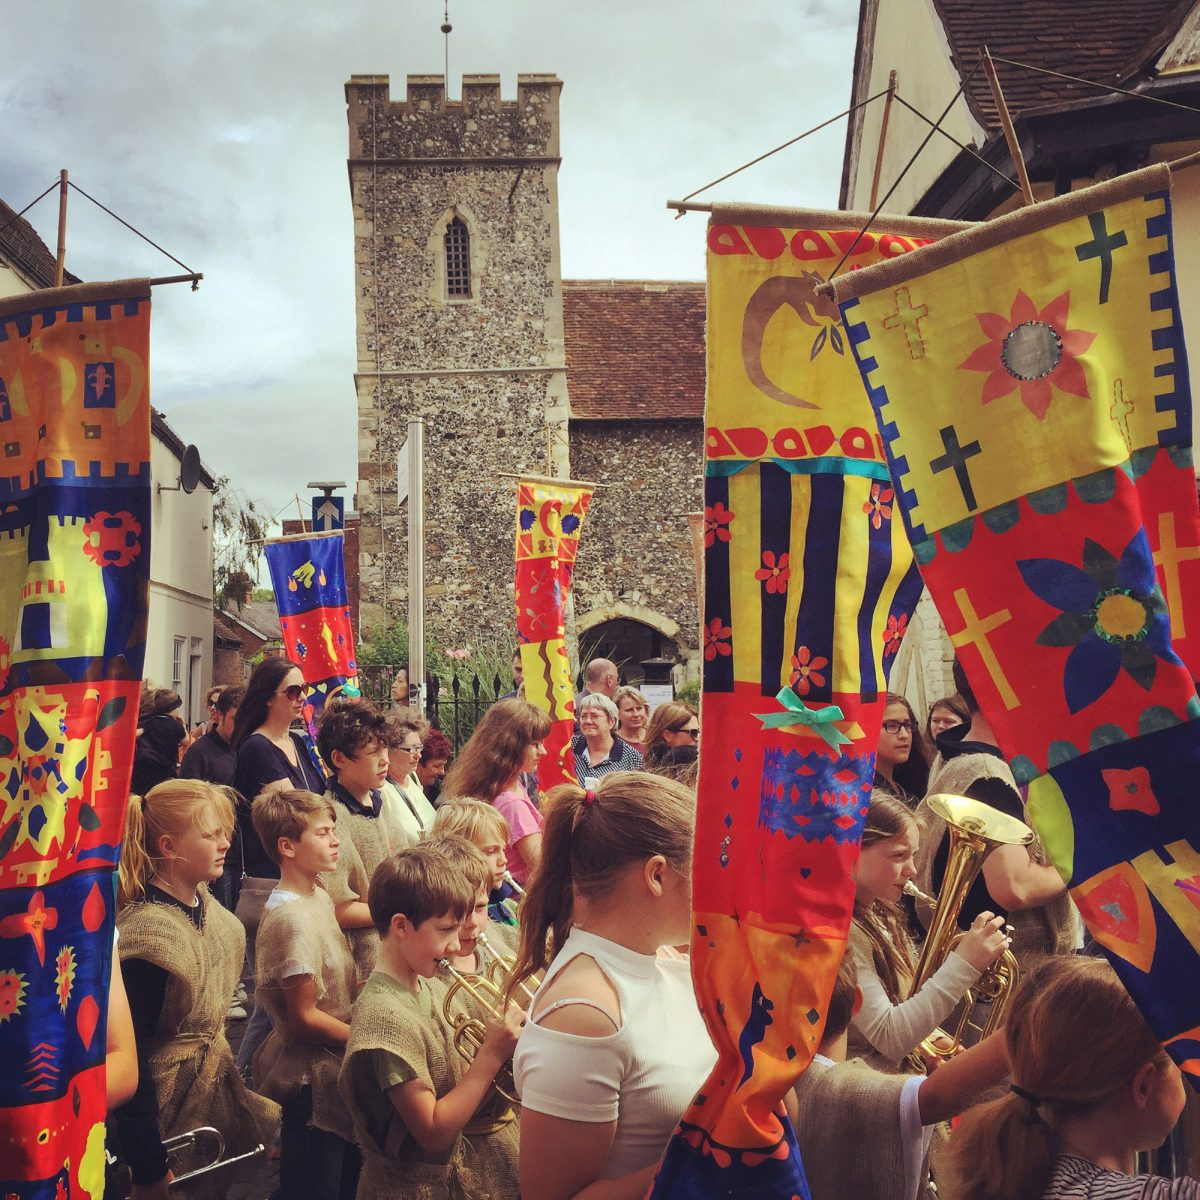 test Twitter Media - We're back at the Medieval Canterbury Pageant on 7th July - this time at @The_Beaney with our 13th century digital experience - do come and follow the story. Details: https://t.co/9RbBOJq11I #dishist https://t.co/XC4lGWTKym